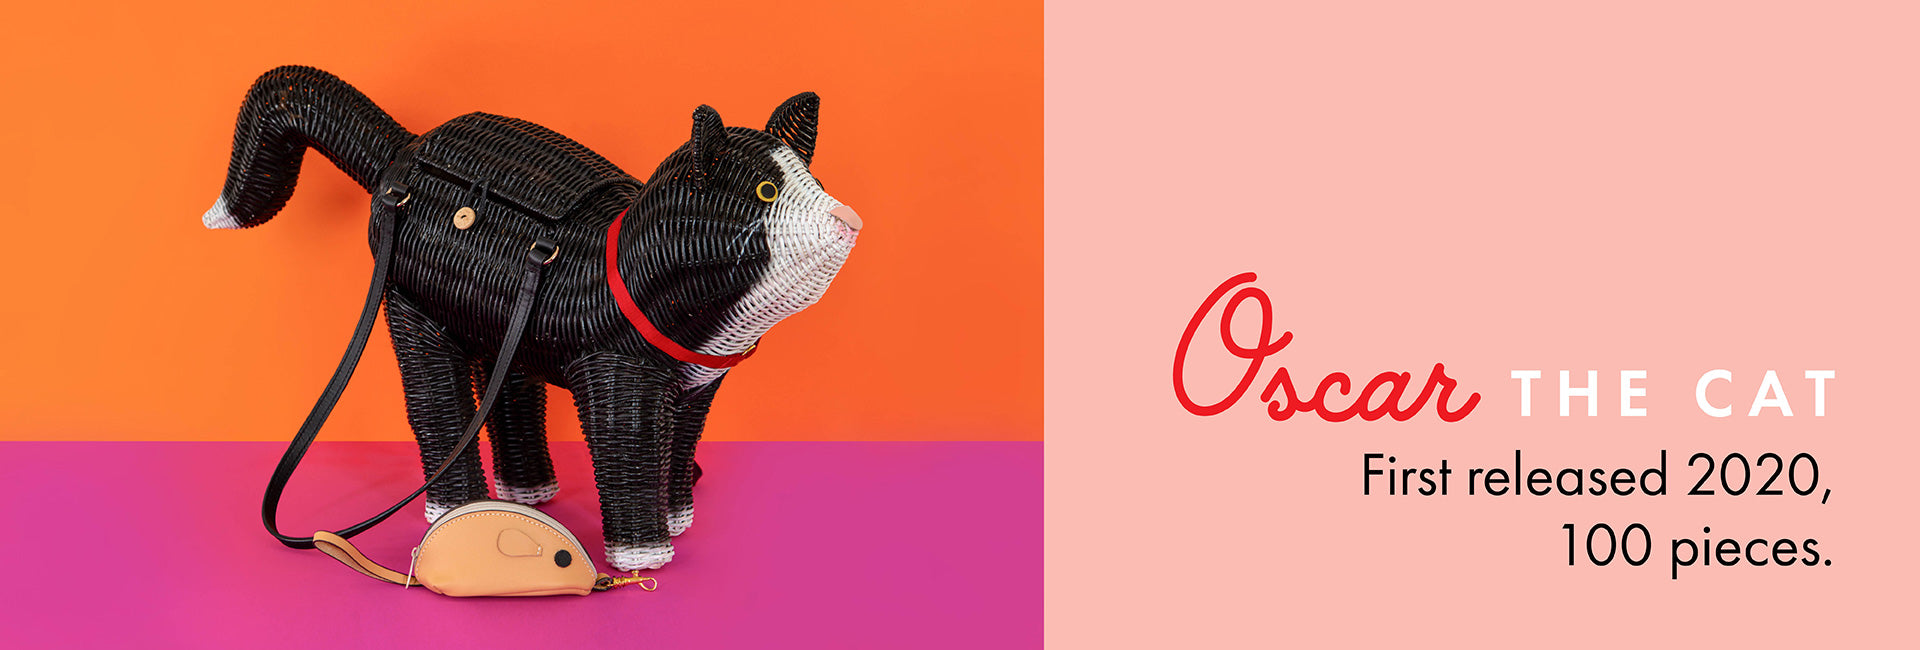 Oscar the cat. First released 2020,  100 pieces.